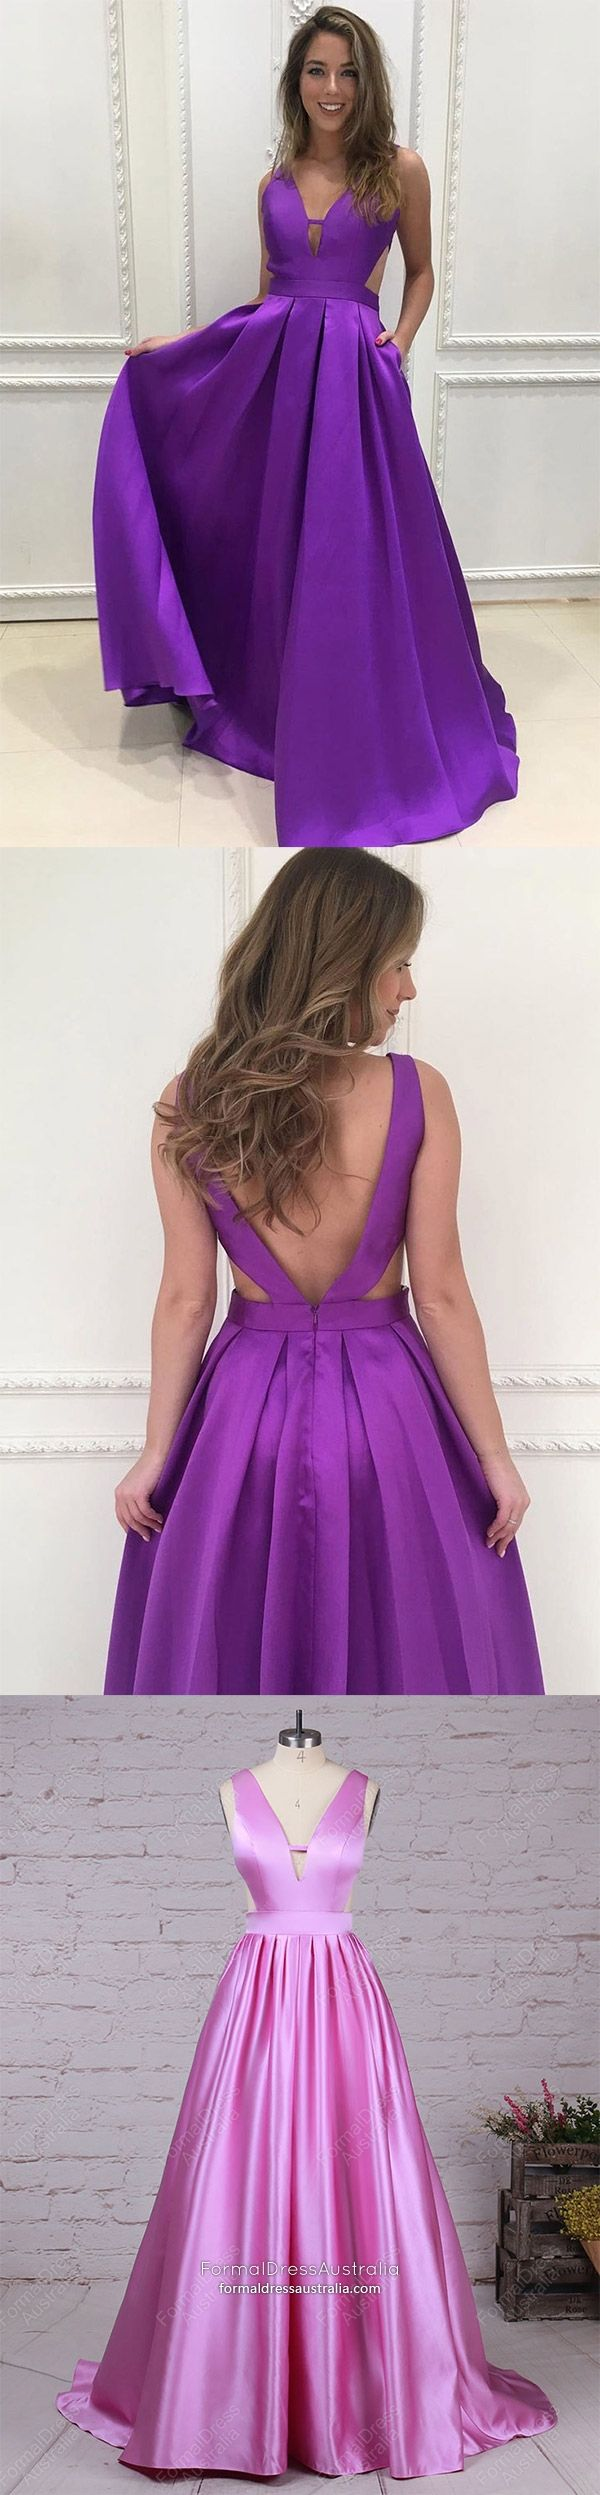 Long Formal Dresses Purple, Princess Prom Dresses Modest, V-neck ...